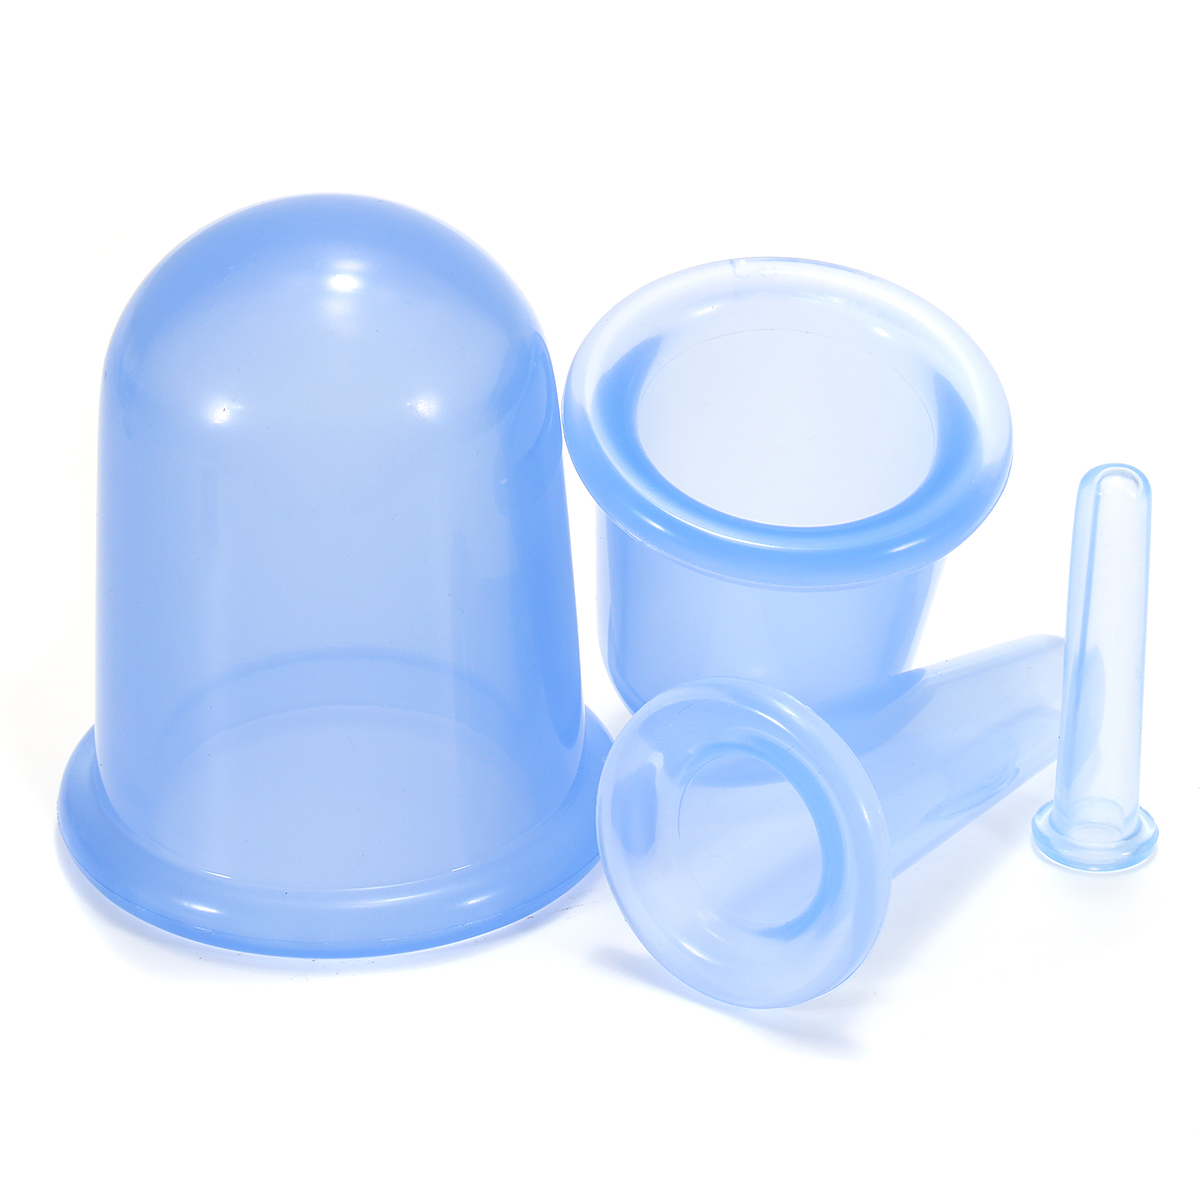 4Pcs Silicone Anti Cellulite Massage Vacuum Cupping Body Cup